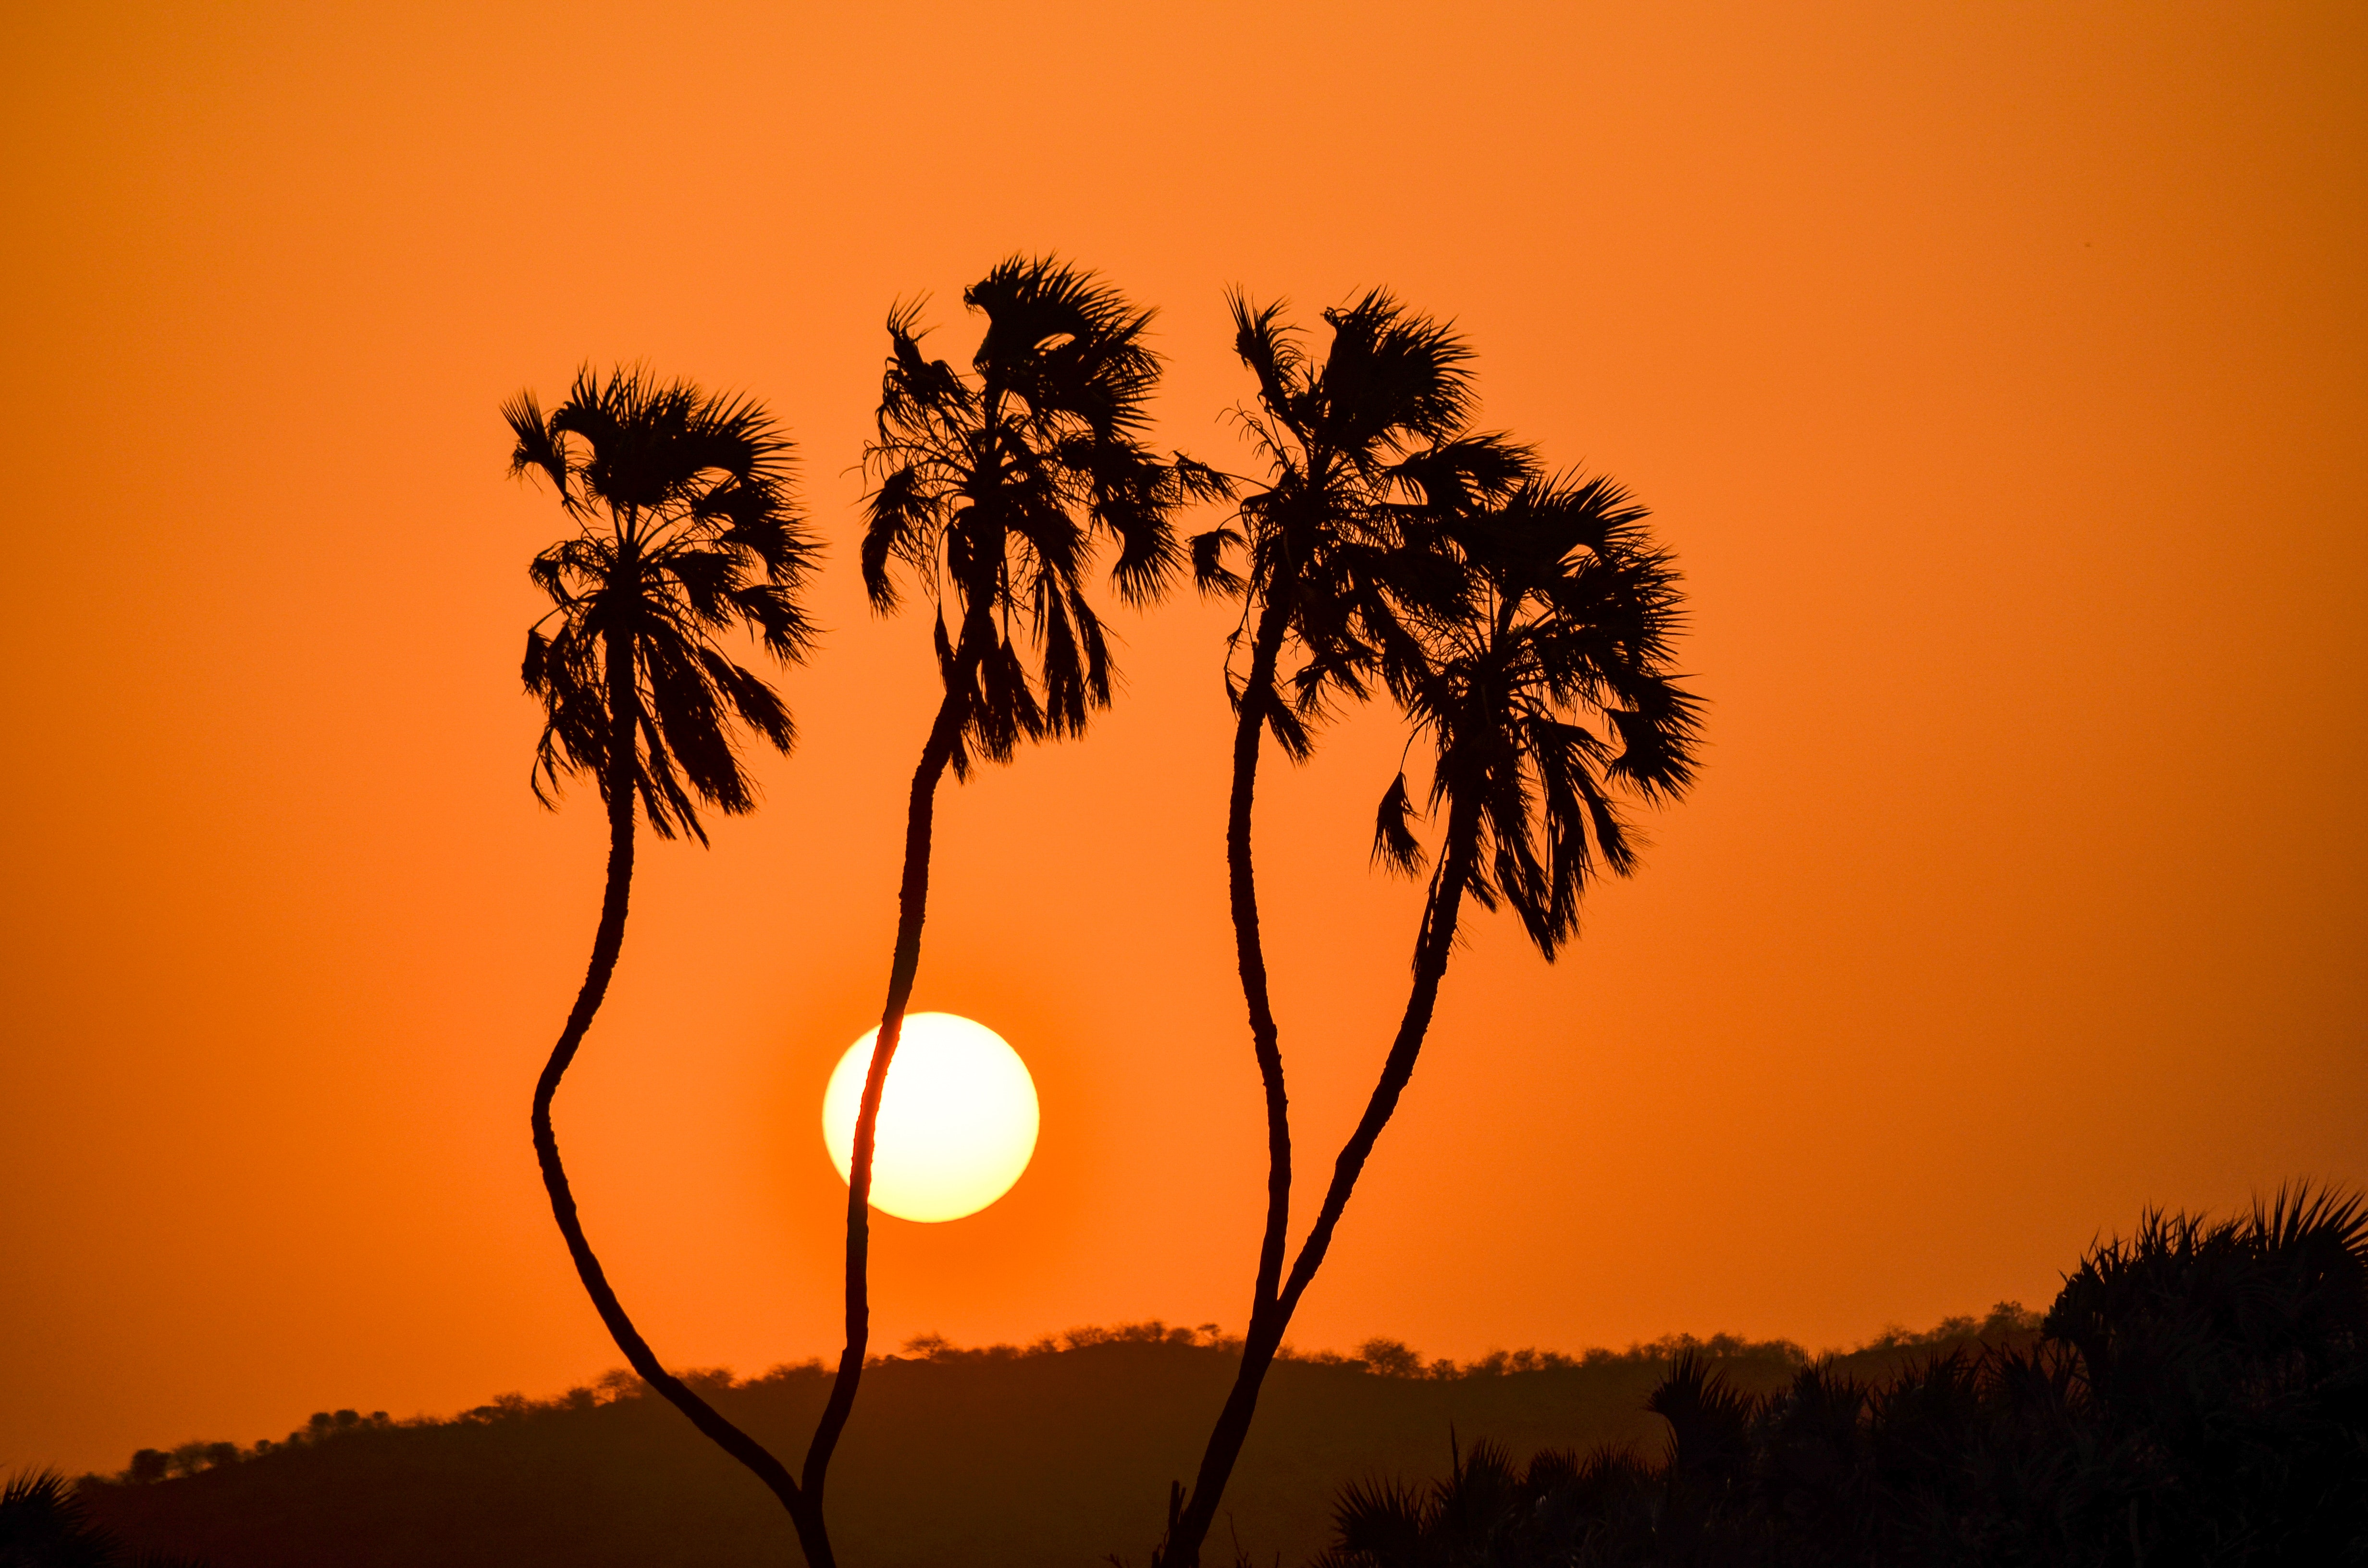 Silhouette of trees during golden hour photo